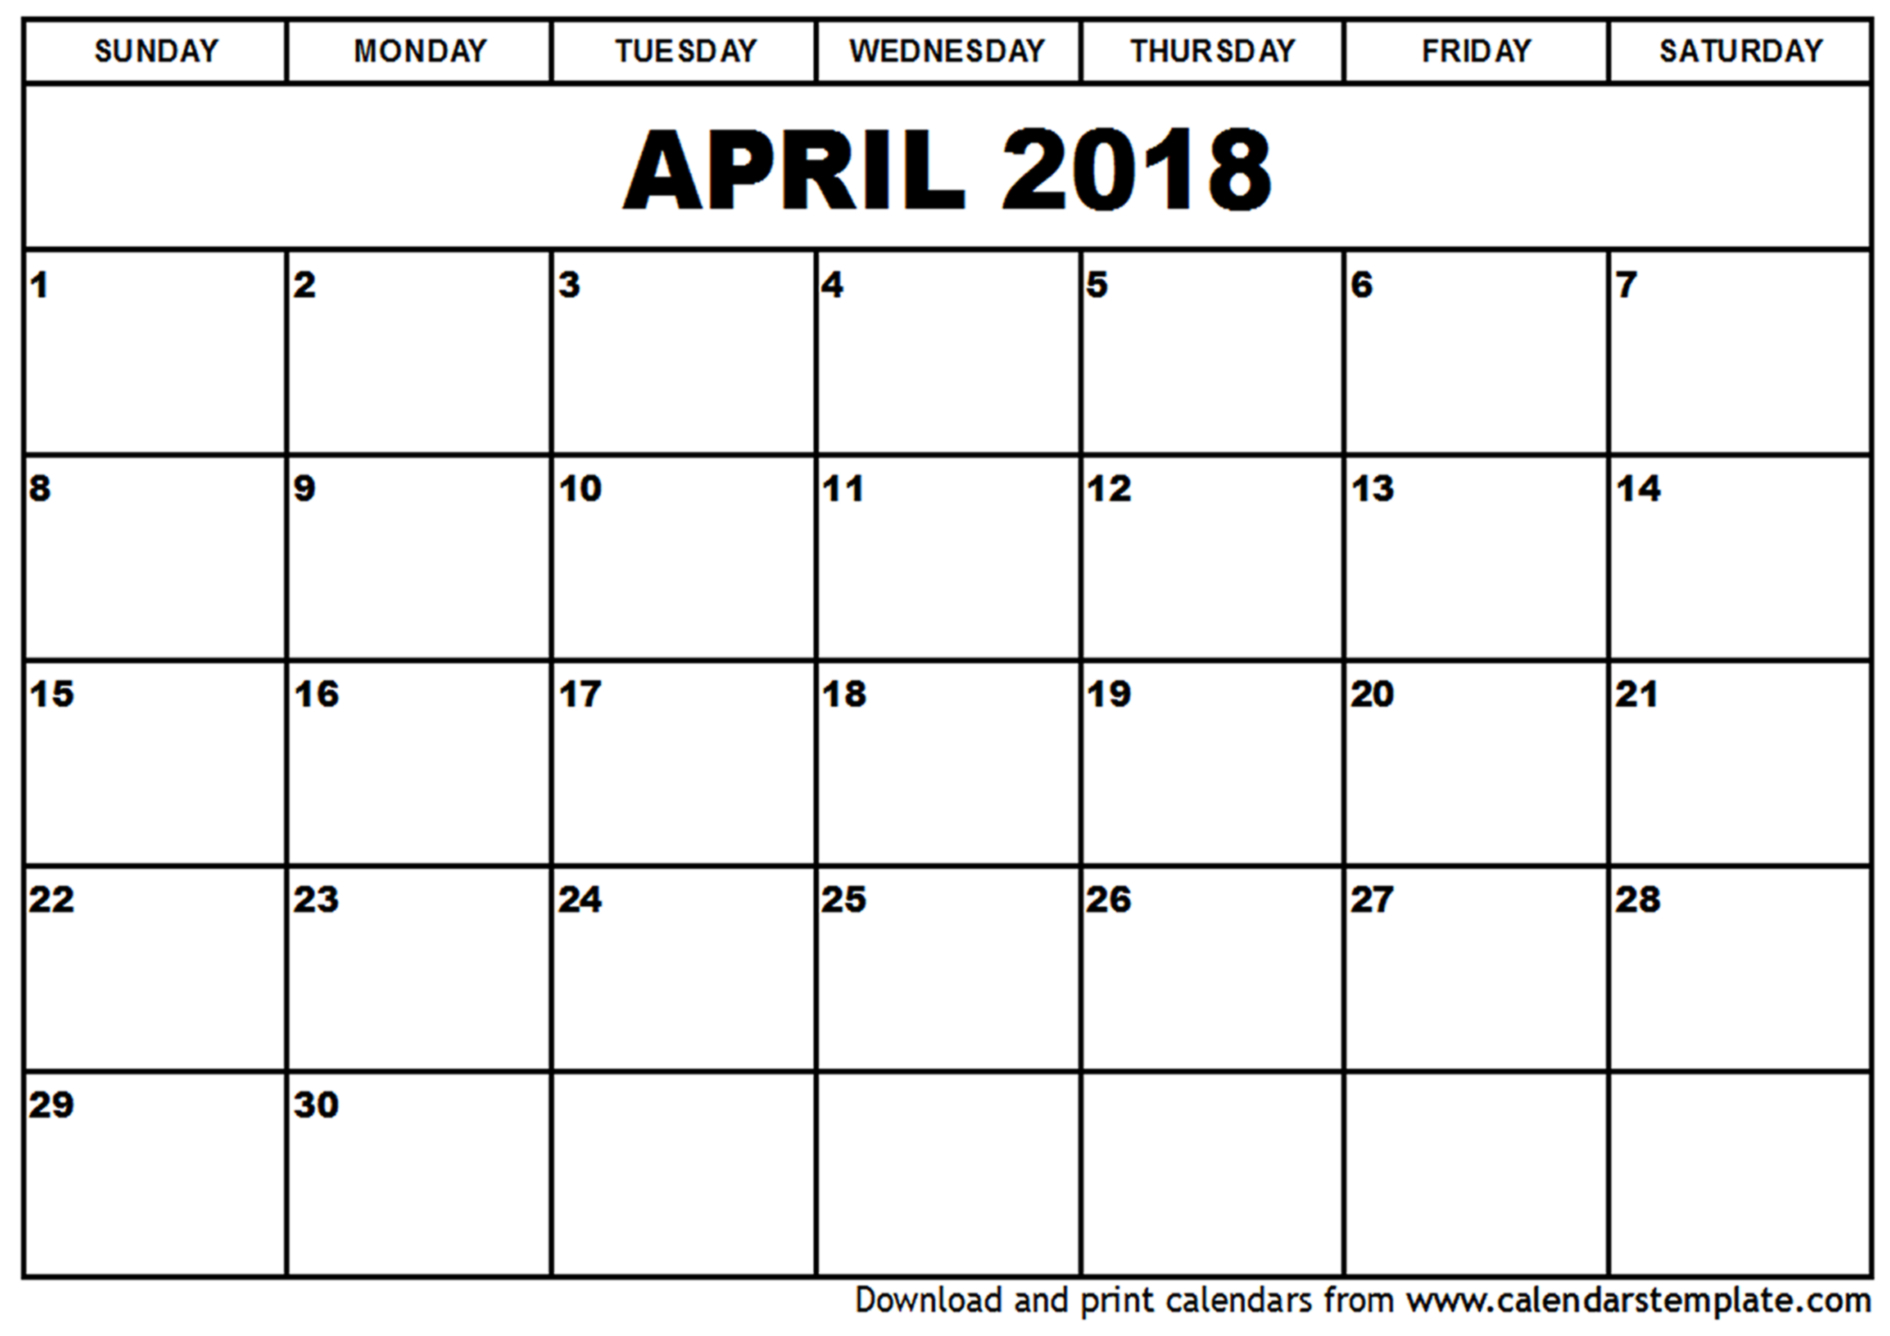 April 2018 Calendar Editable | Calendar Template